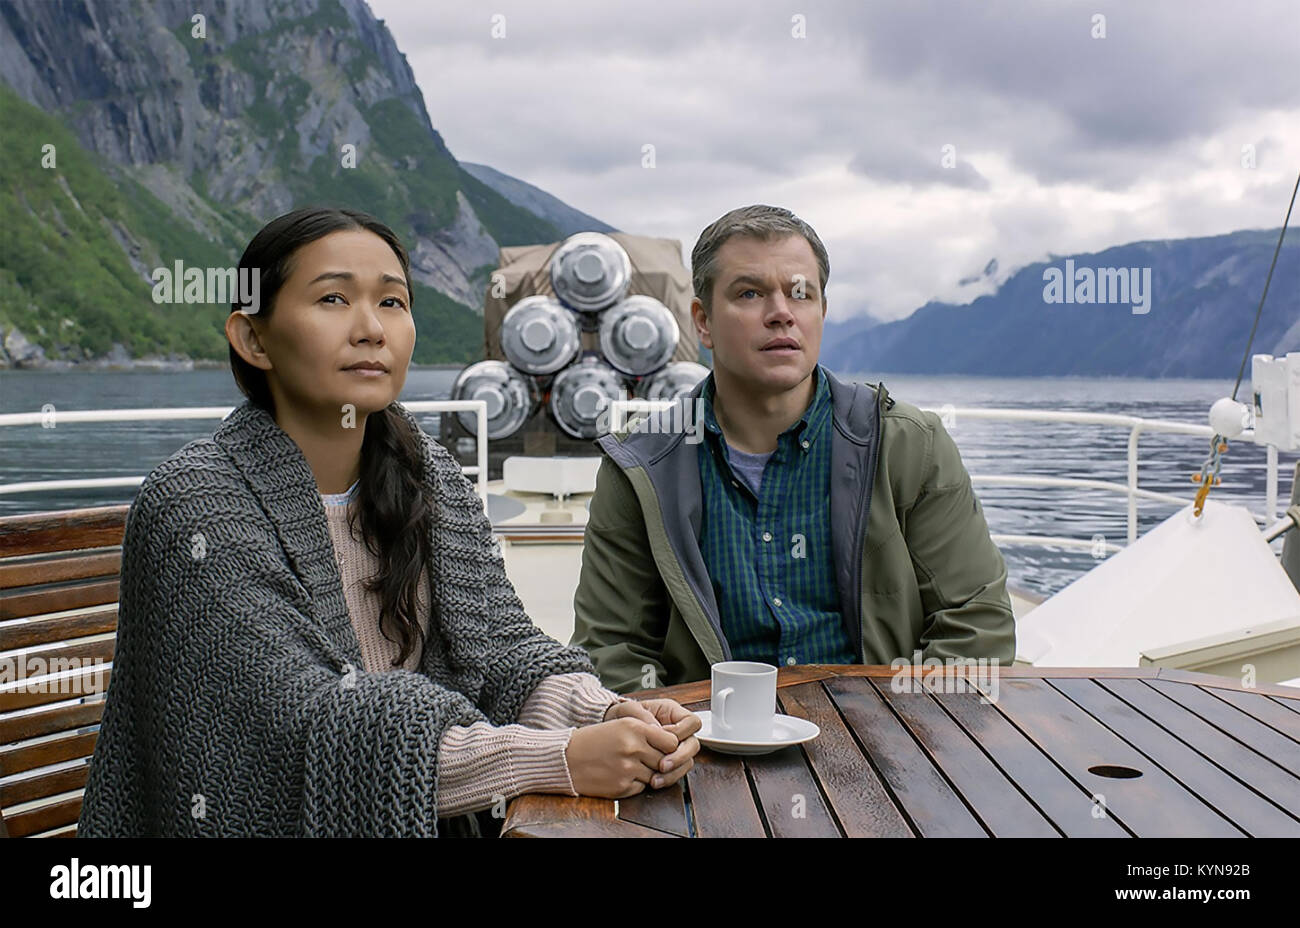 DOWNSIZING  2017 Paramount Pictures film with Matt Damon and Hong Chau - Stock Image